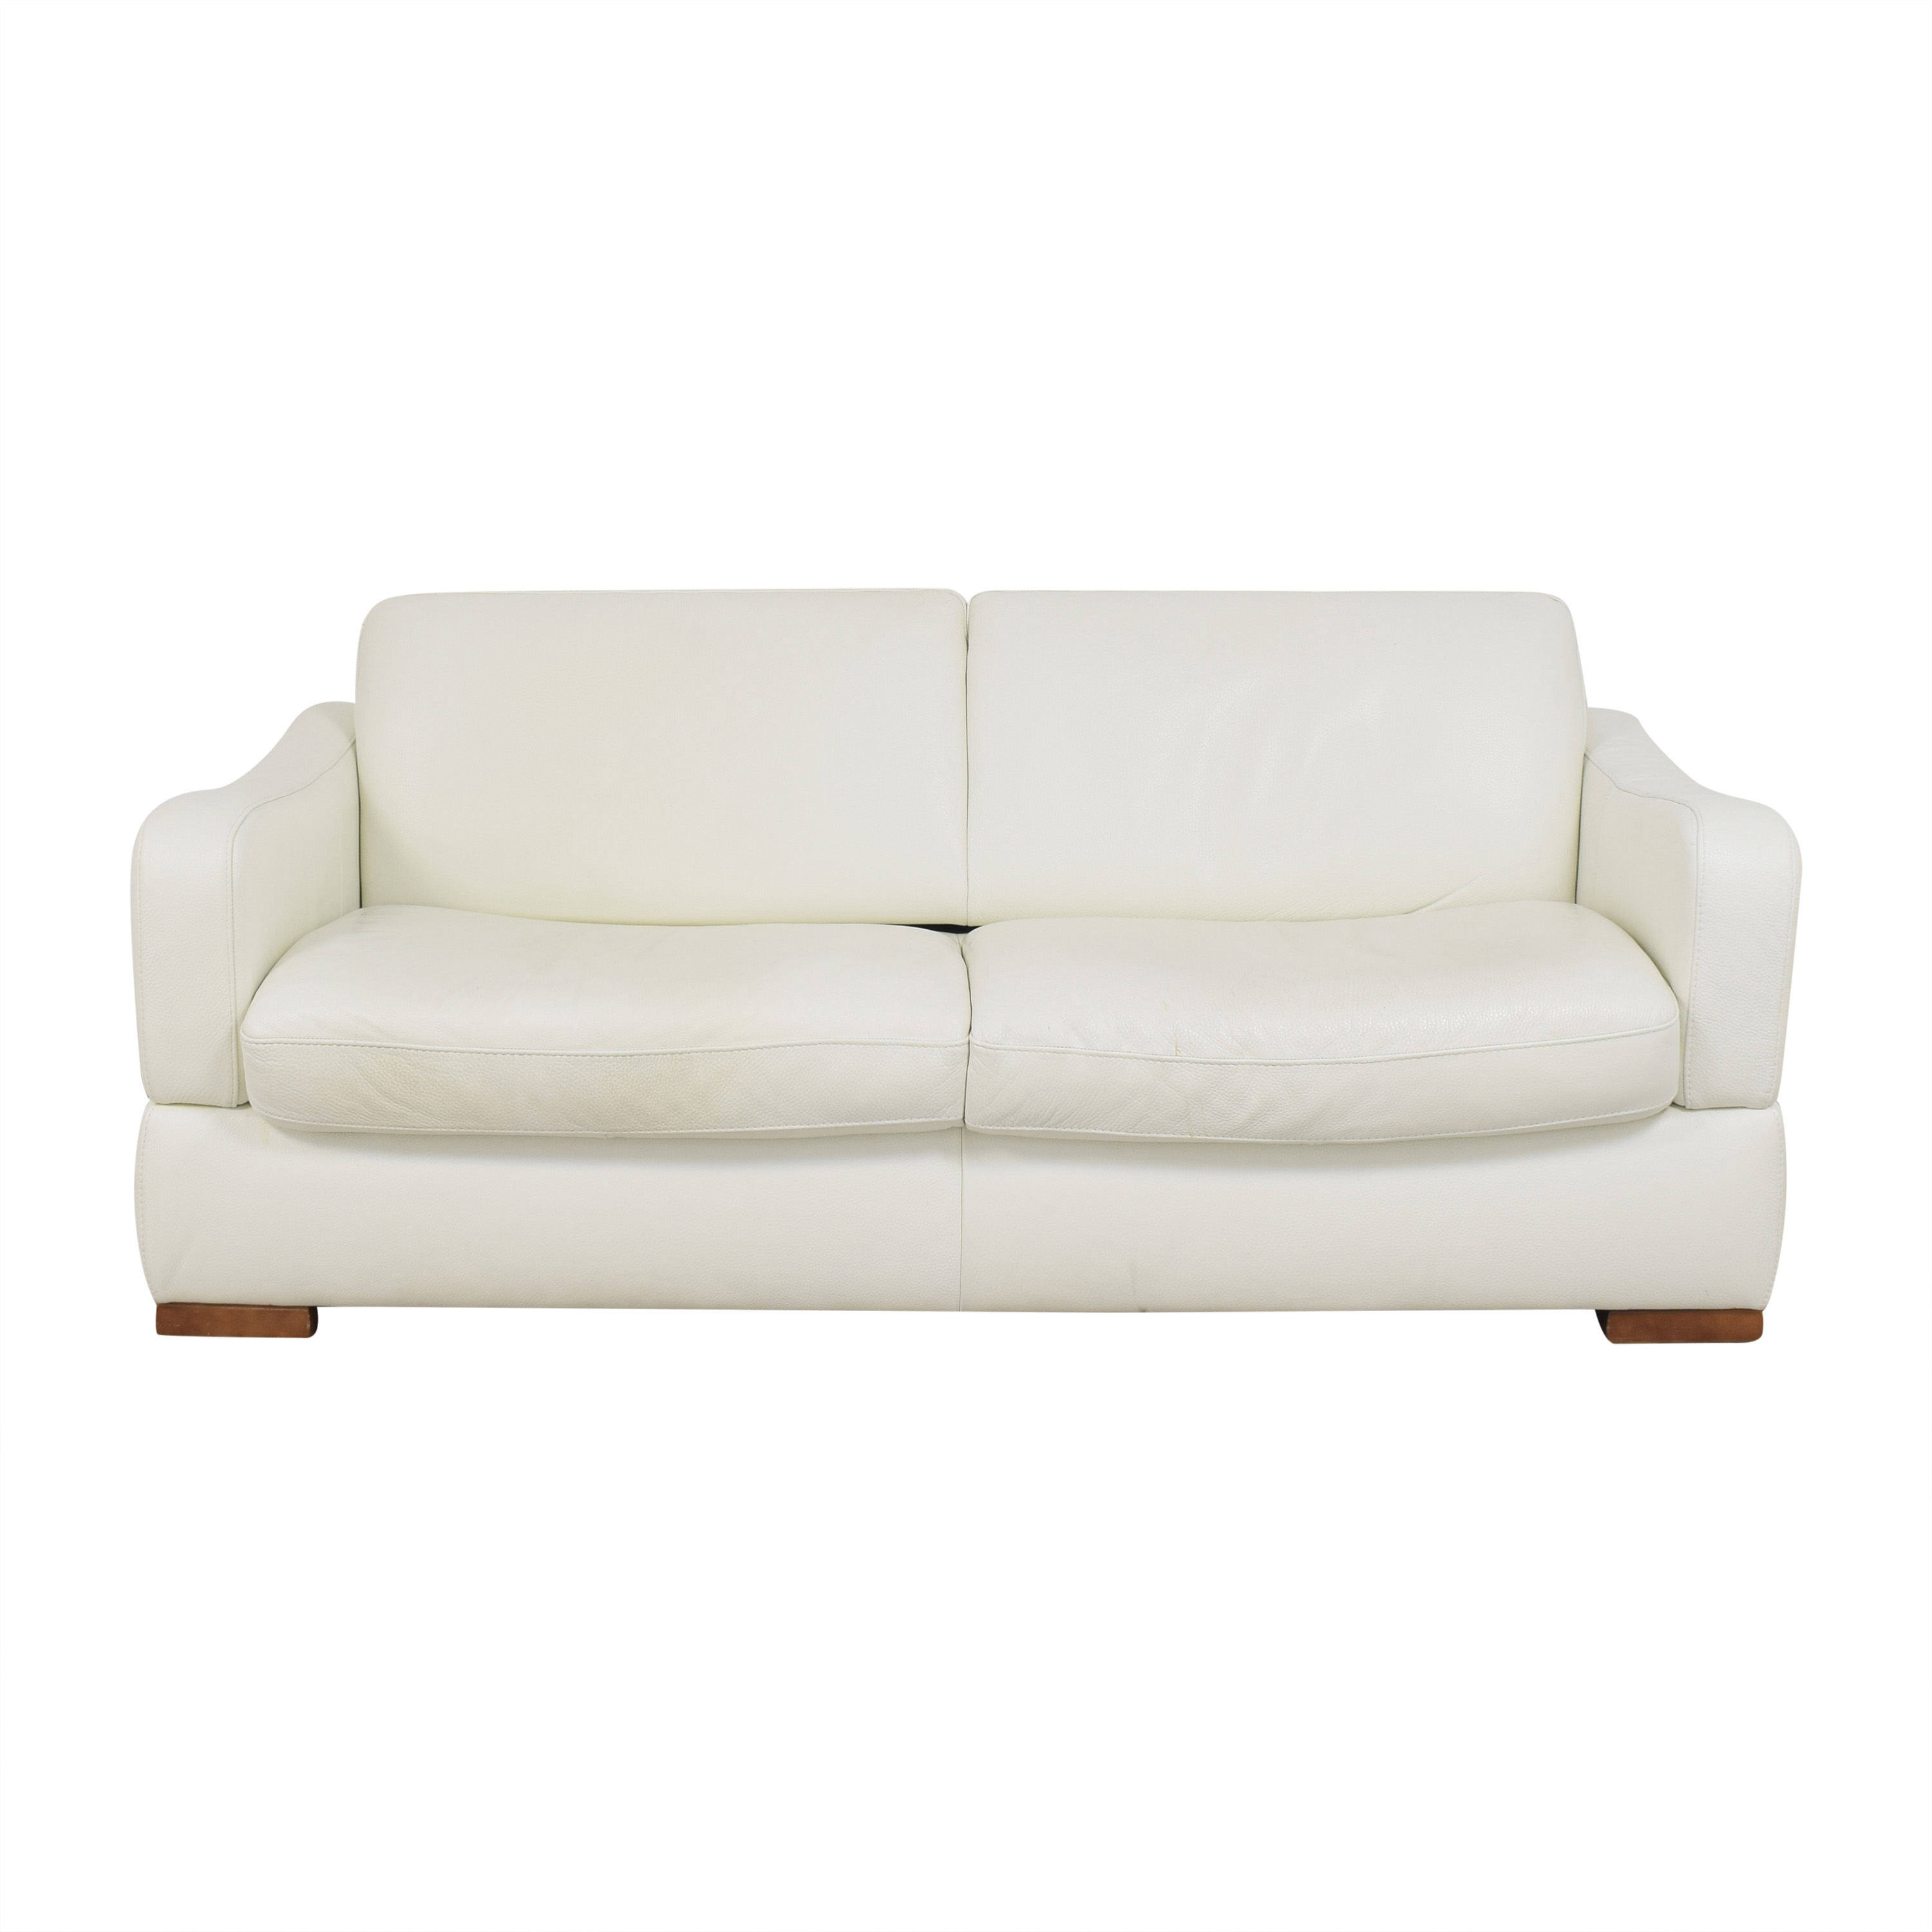 Italsofa Italsofa Two Cushion Sleeper Sofa on sale